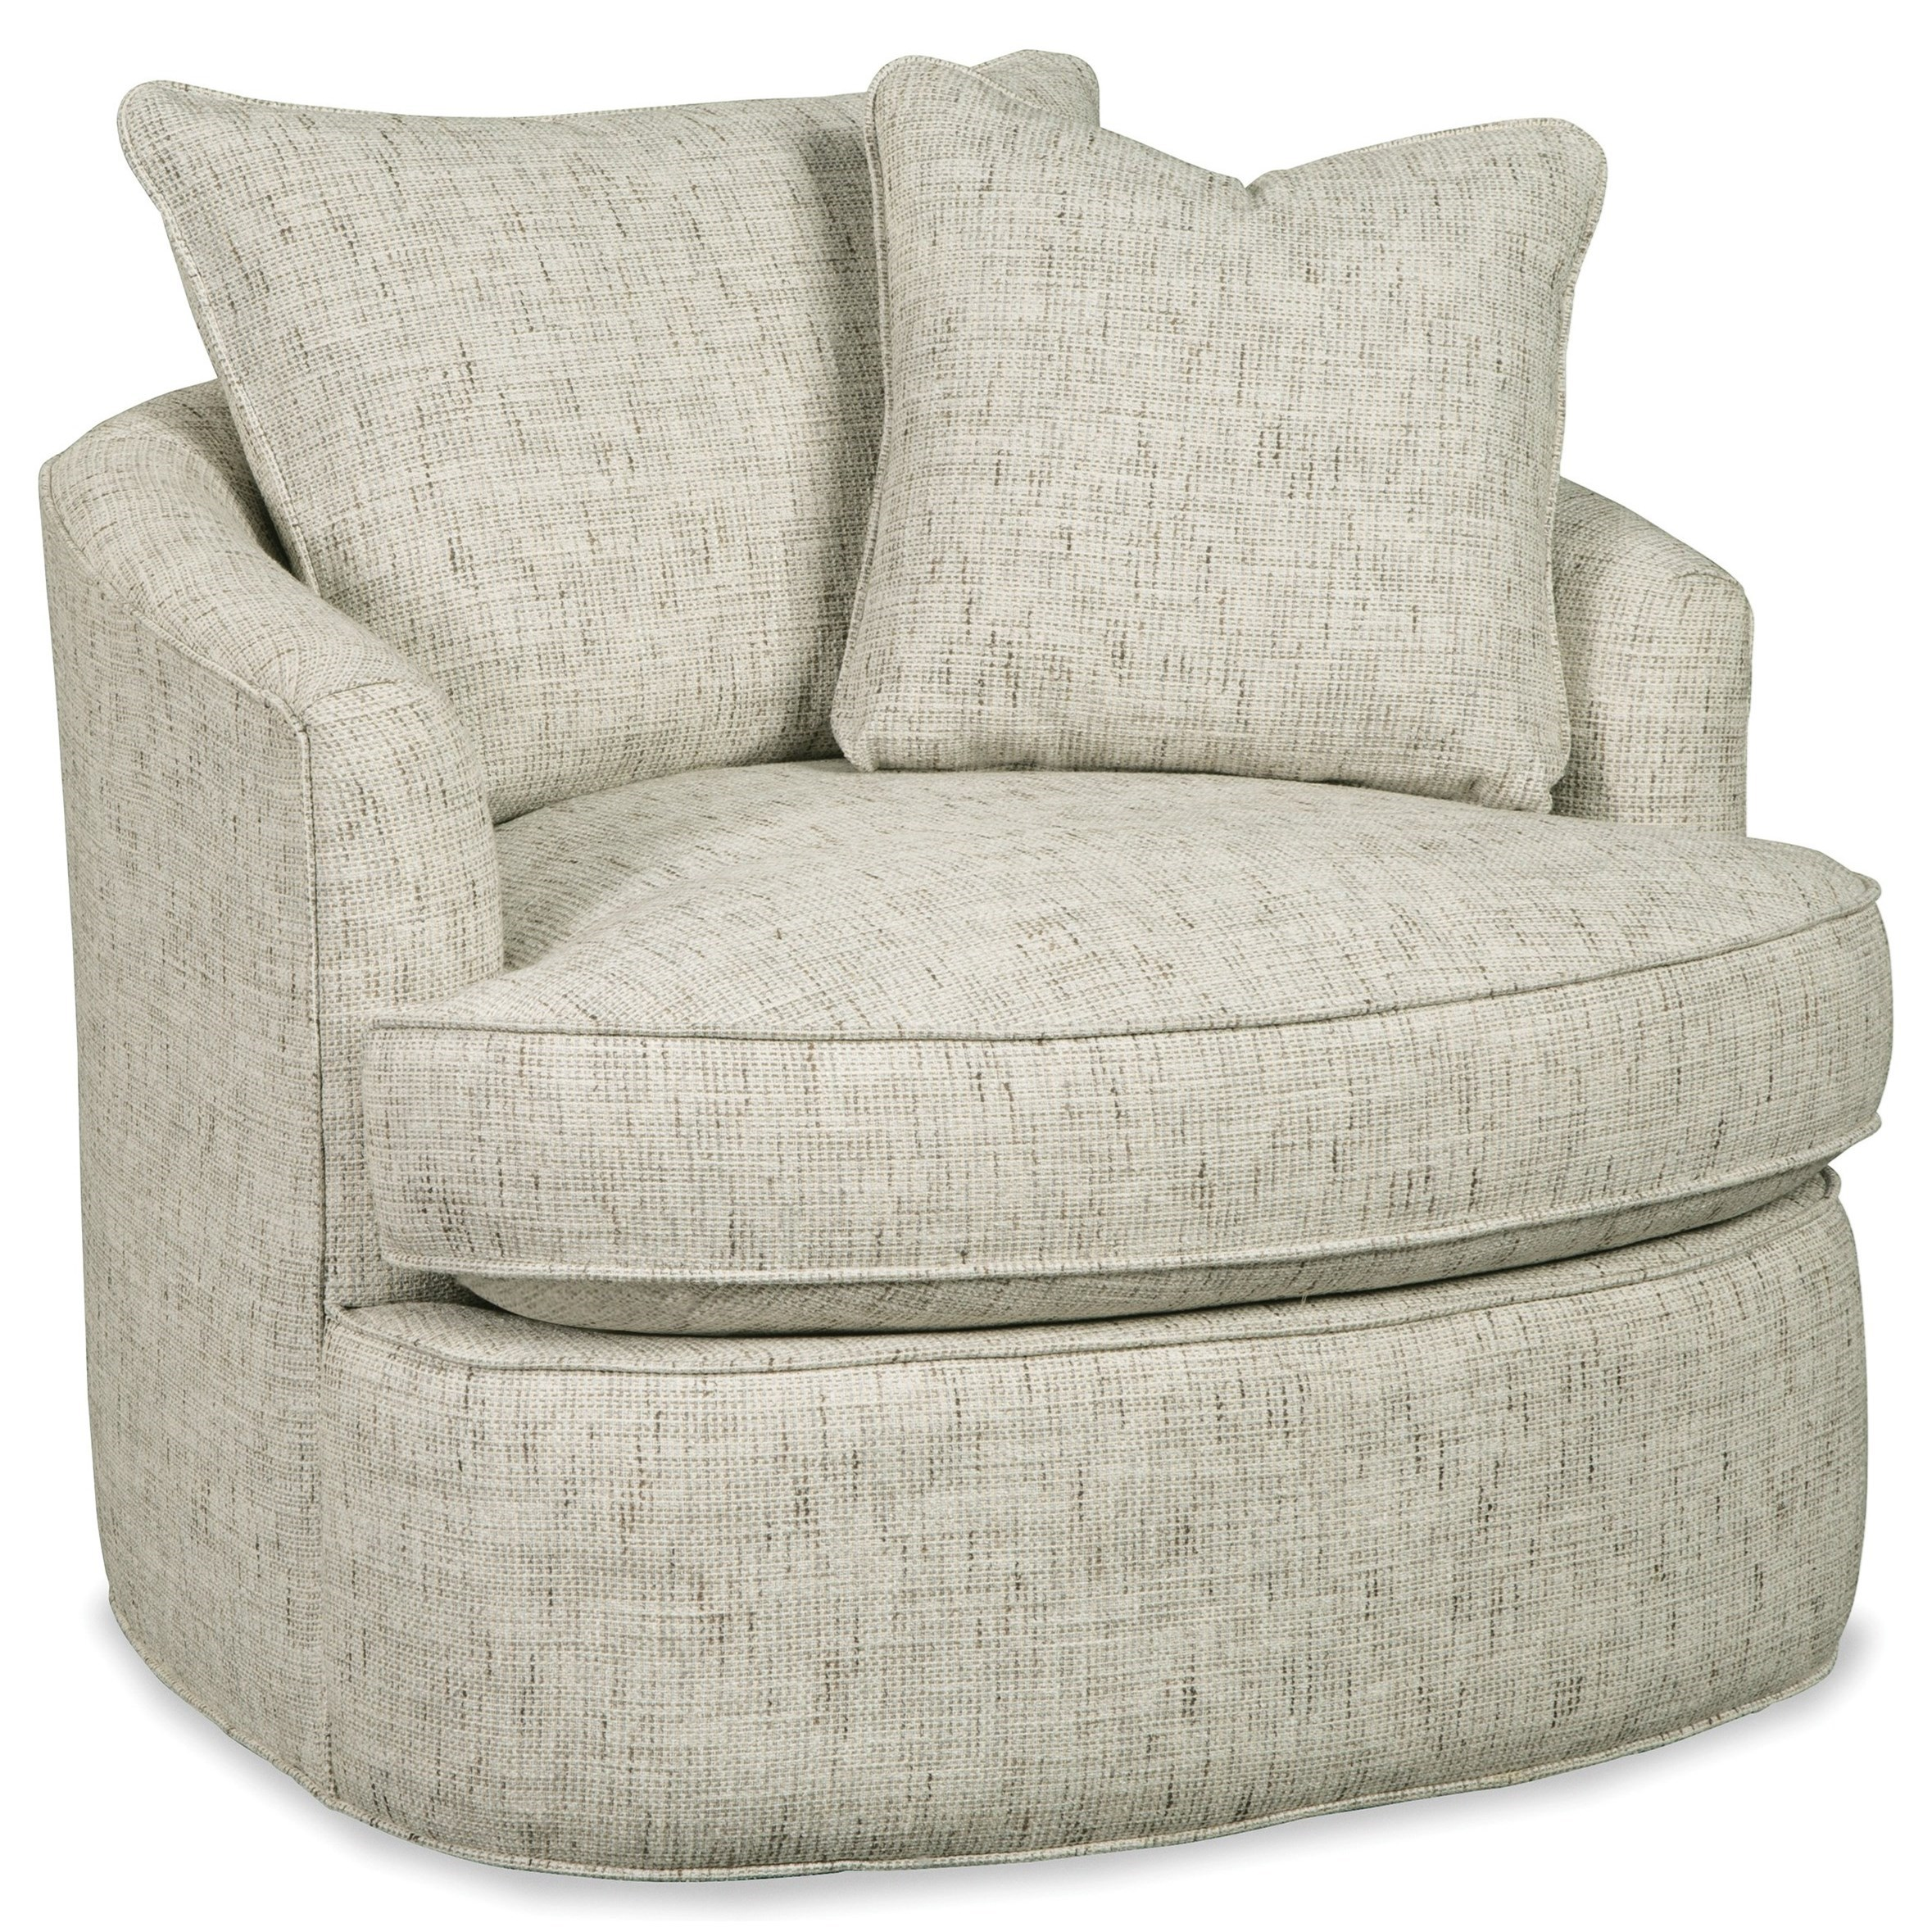 085710 Swivel Chair by Craftmaster at Baer's Furniture